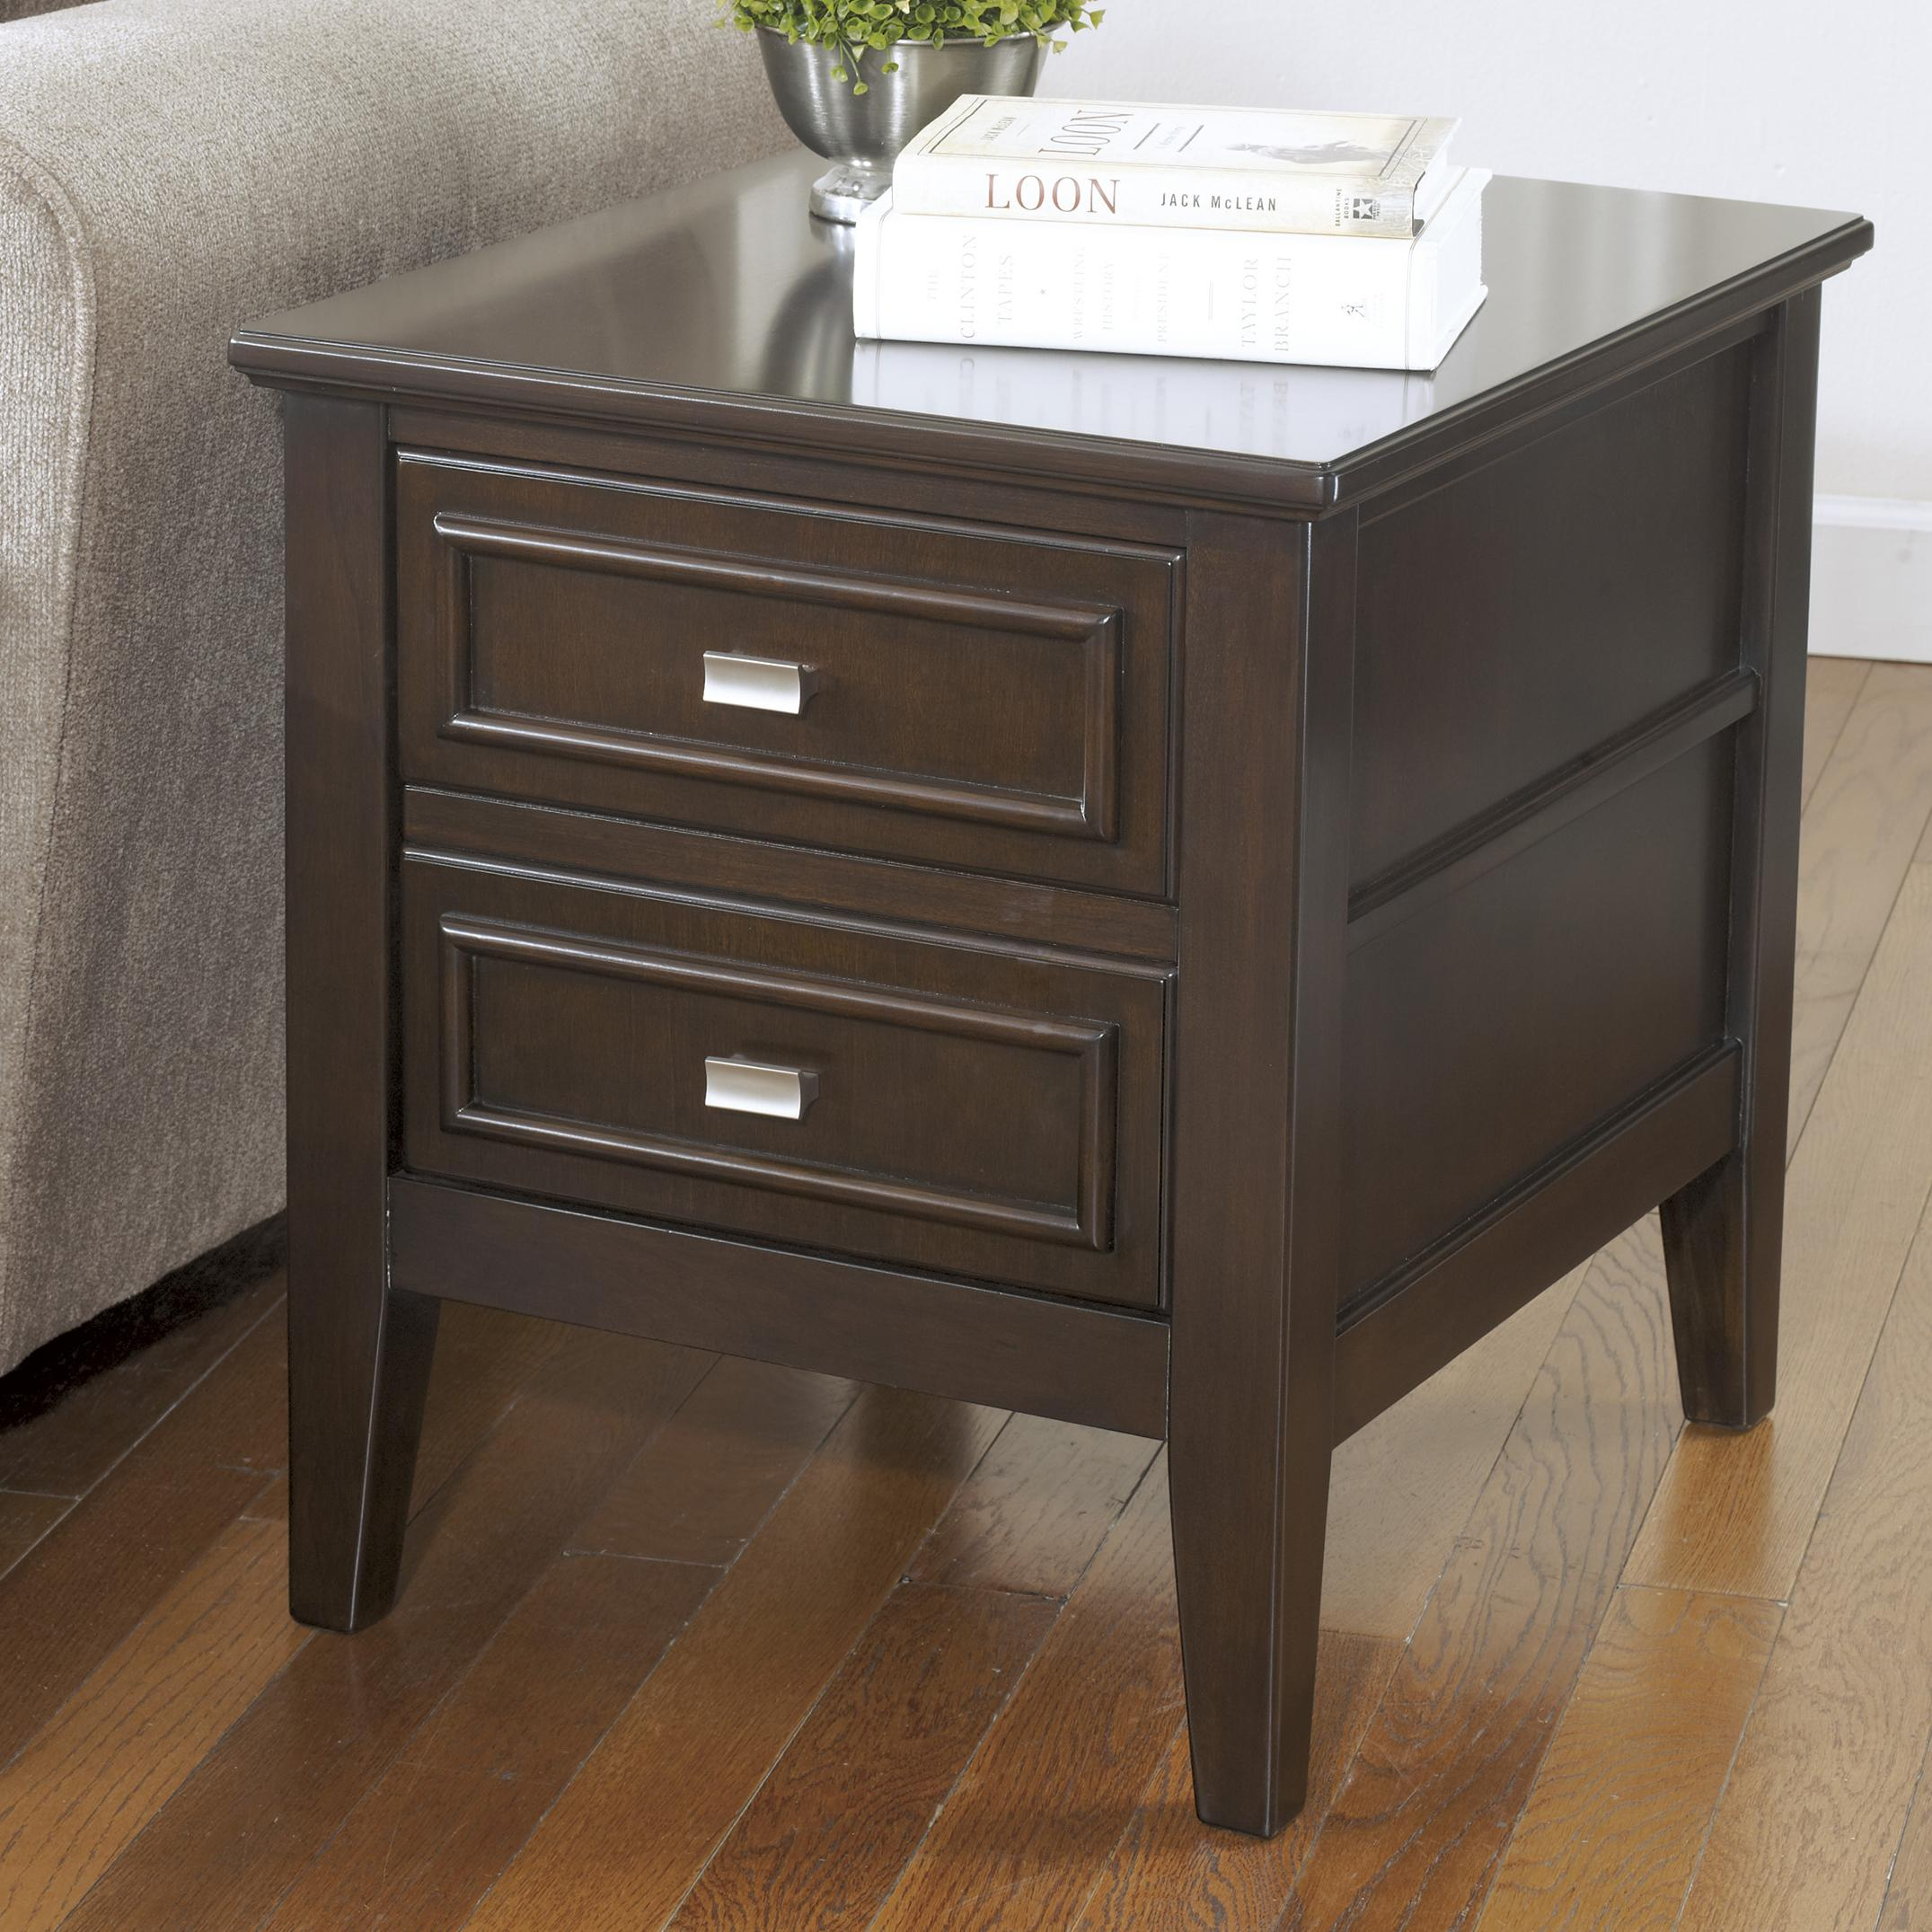 Signature Design by Ashley Larimer Rectangular End Table - Item Number: T654-2